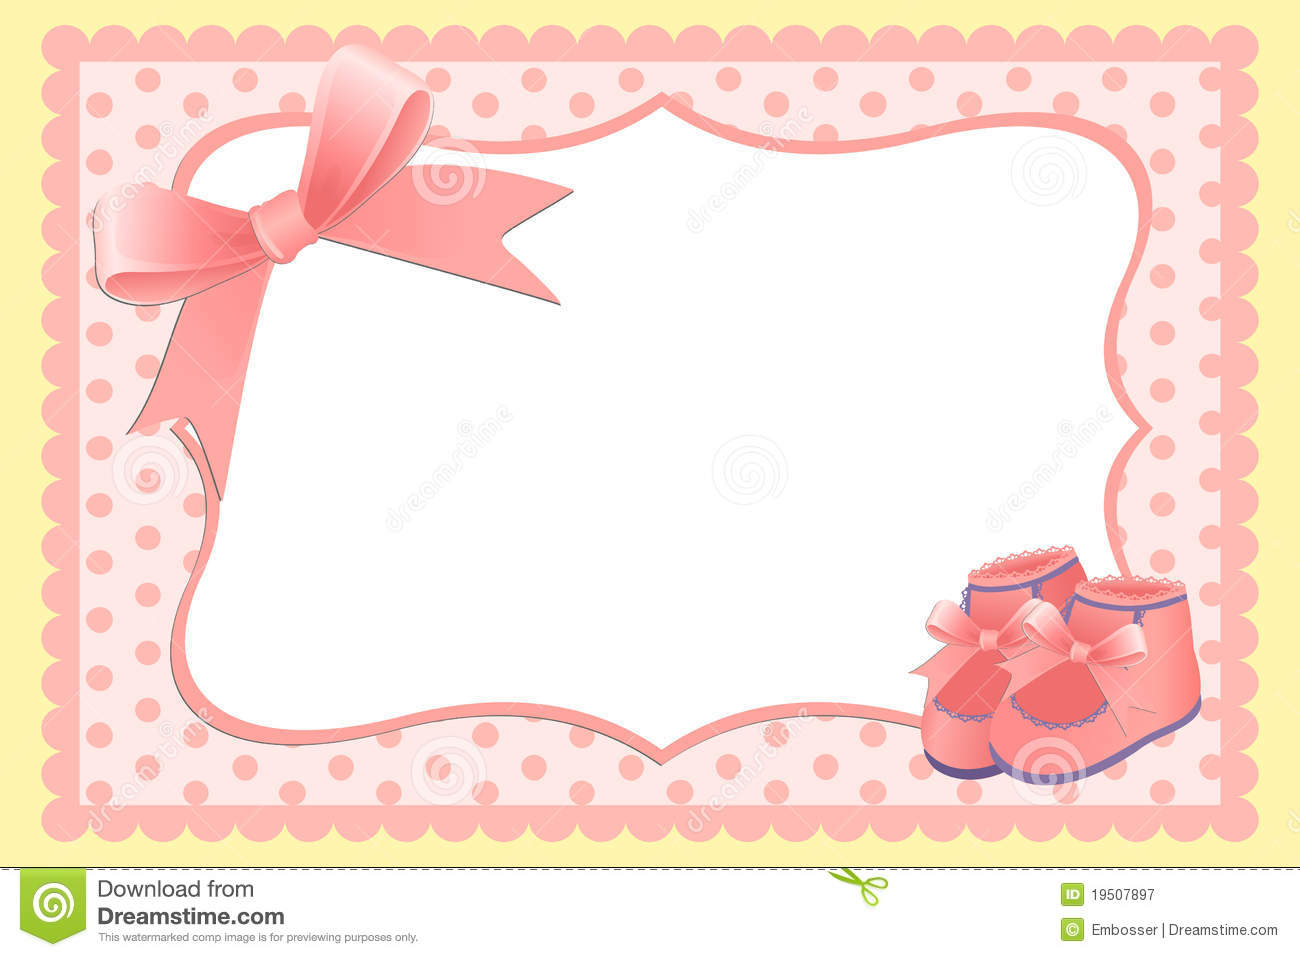 010 Template Ideas Free Birth Announcements Templates Cute Baby S - Free Printable Baby Birth Announcement Cards